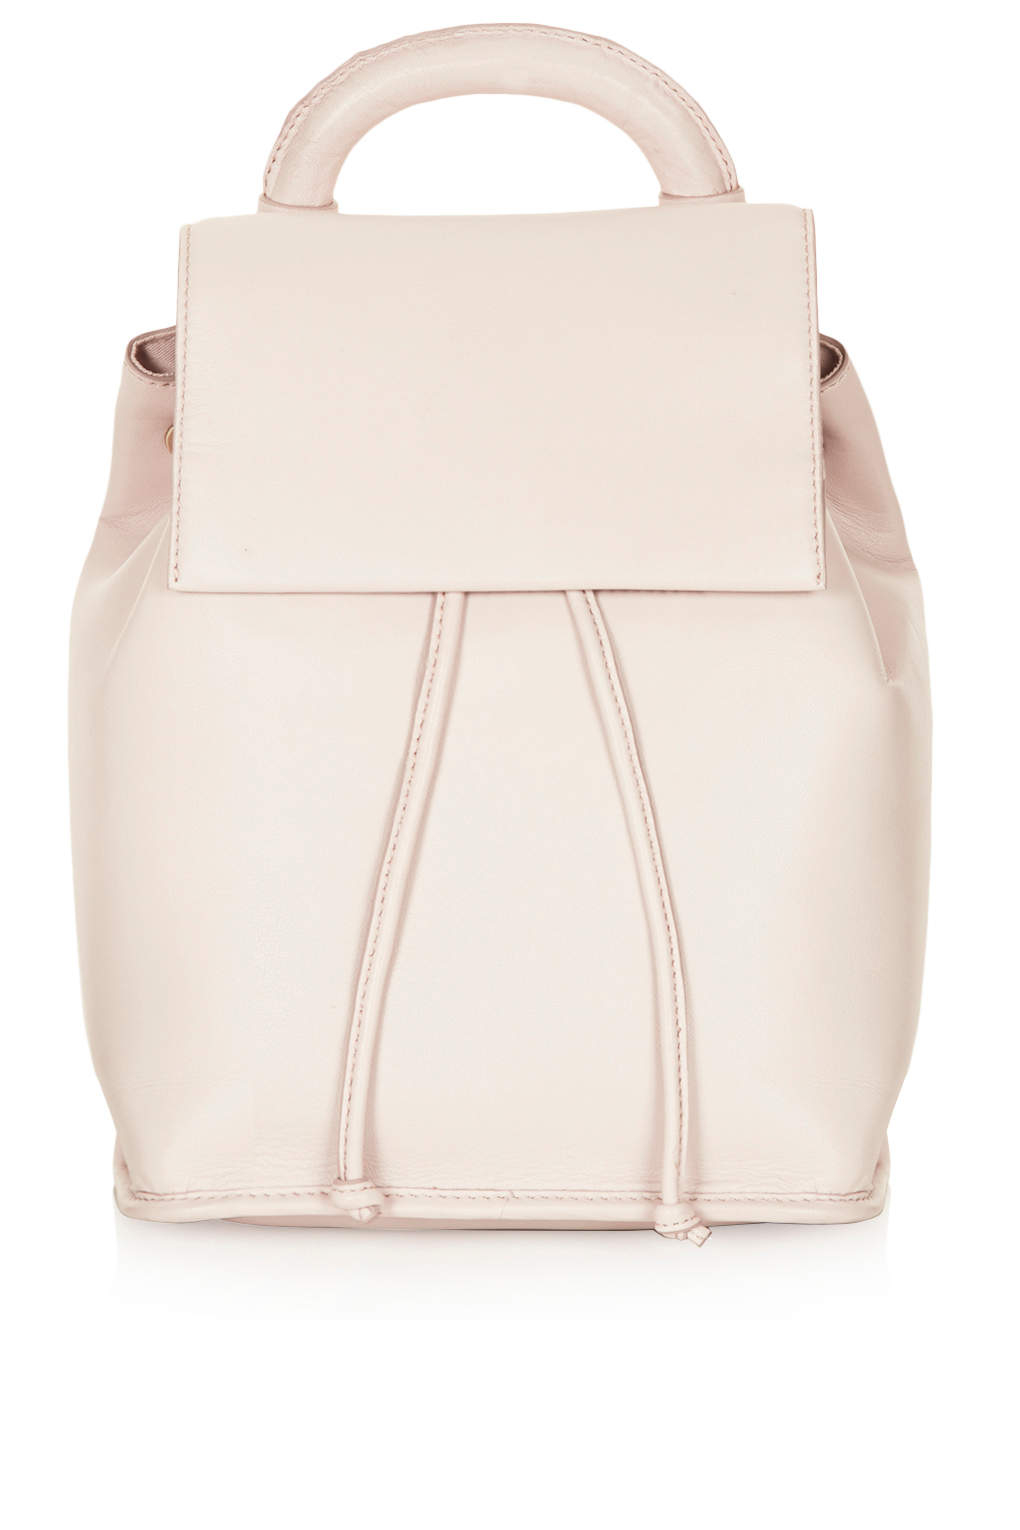 Topshop Premium Clean Leather Backpack in Pink | Lyst